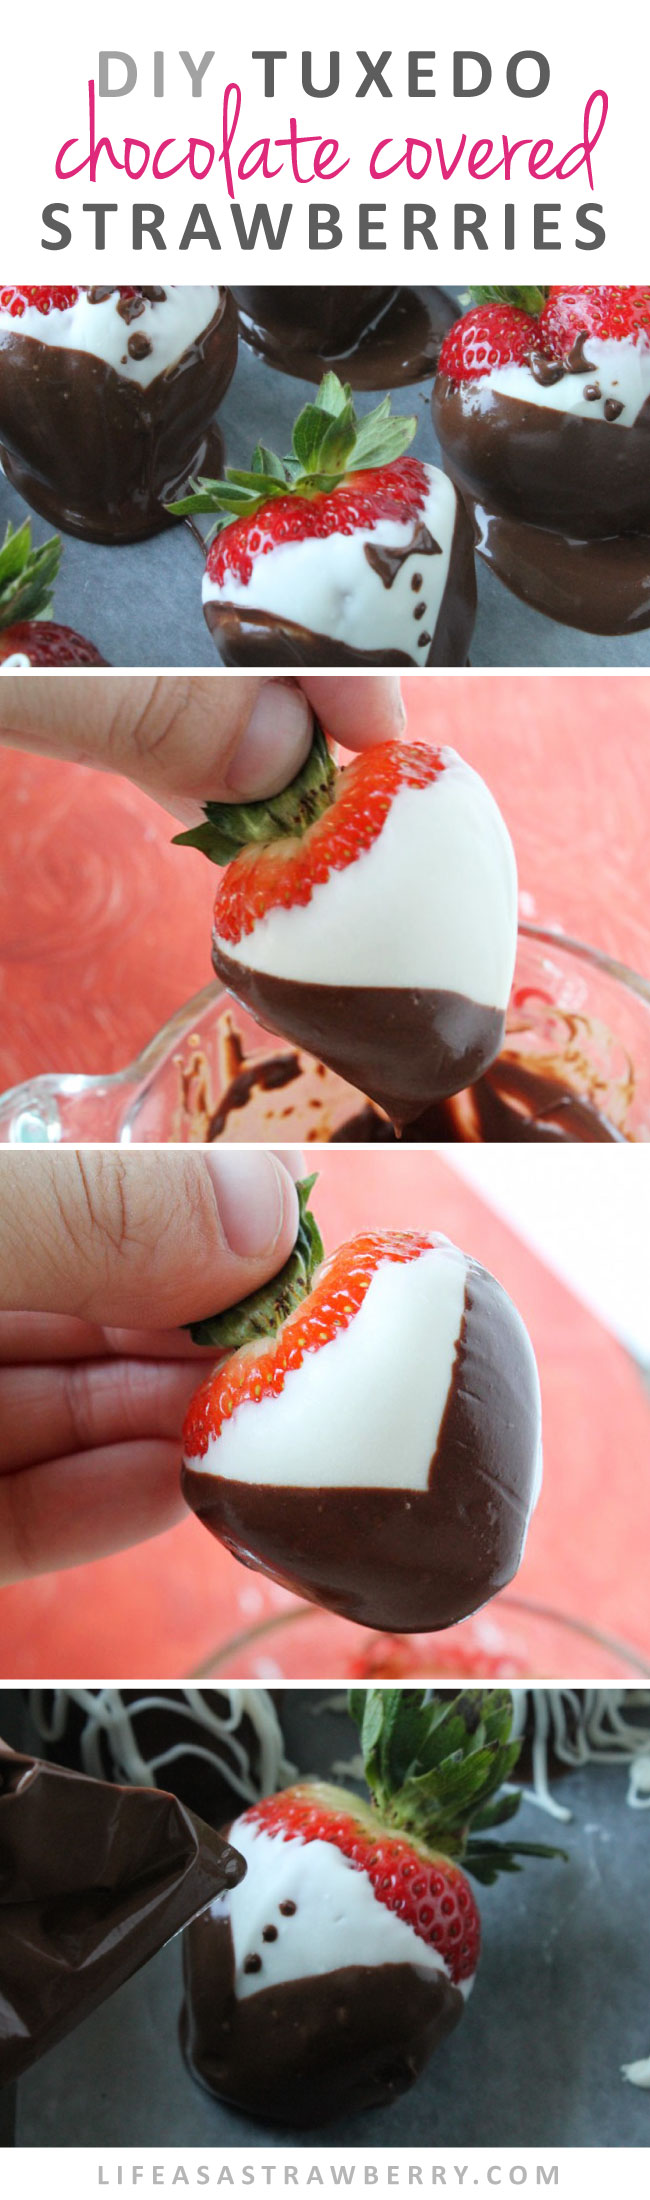 Tuxedo Chocolate Covered Strawberries | Make your own gourmet chocolate strawberries at home with this easy recipe and photo tutorial!